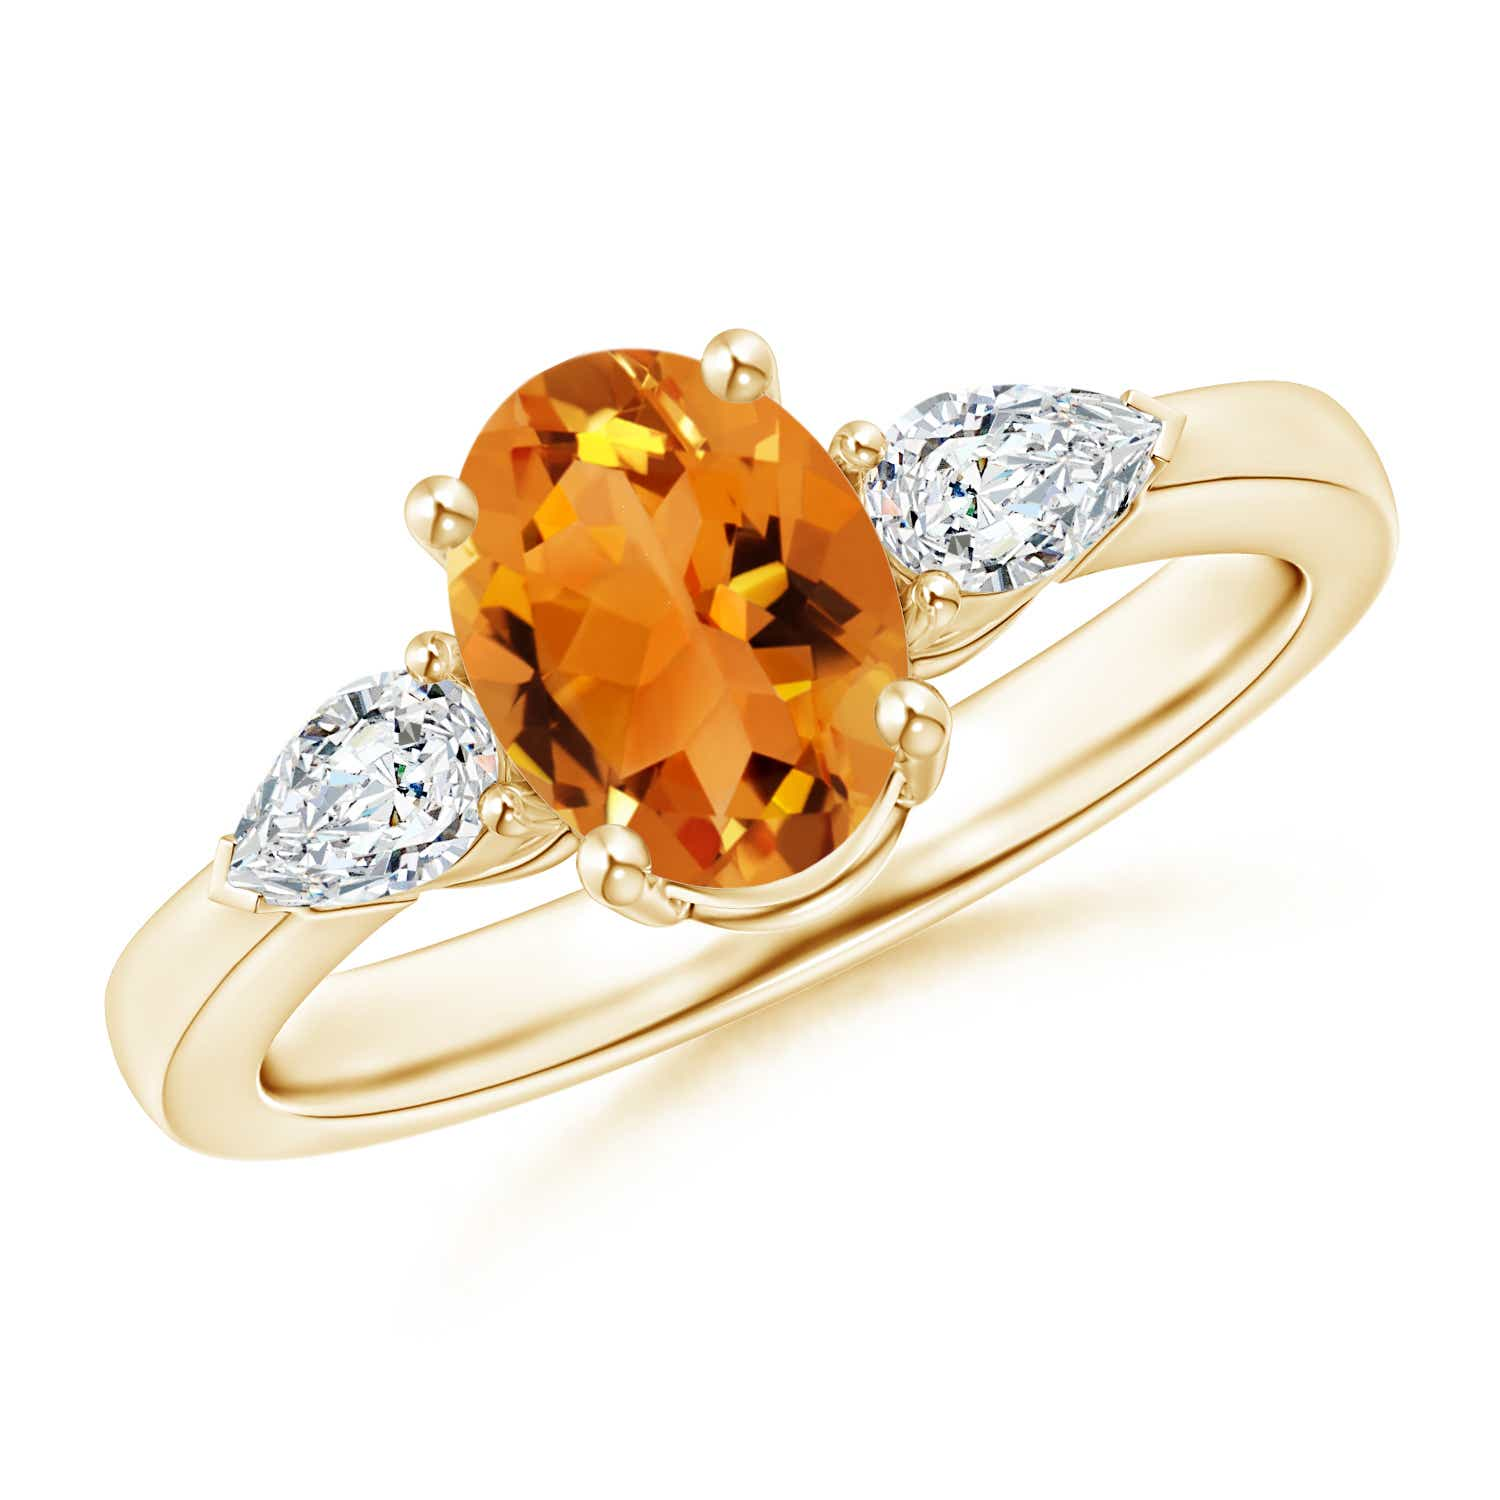 Angara Four Prong Three Stone Oval Citrine and Diamond Ring in Yellow Gold ETWVWyO